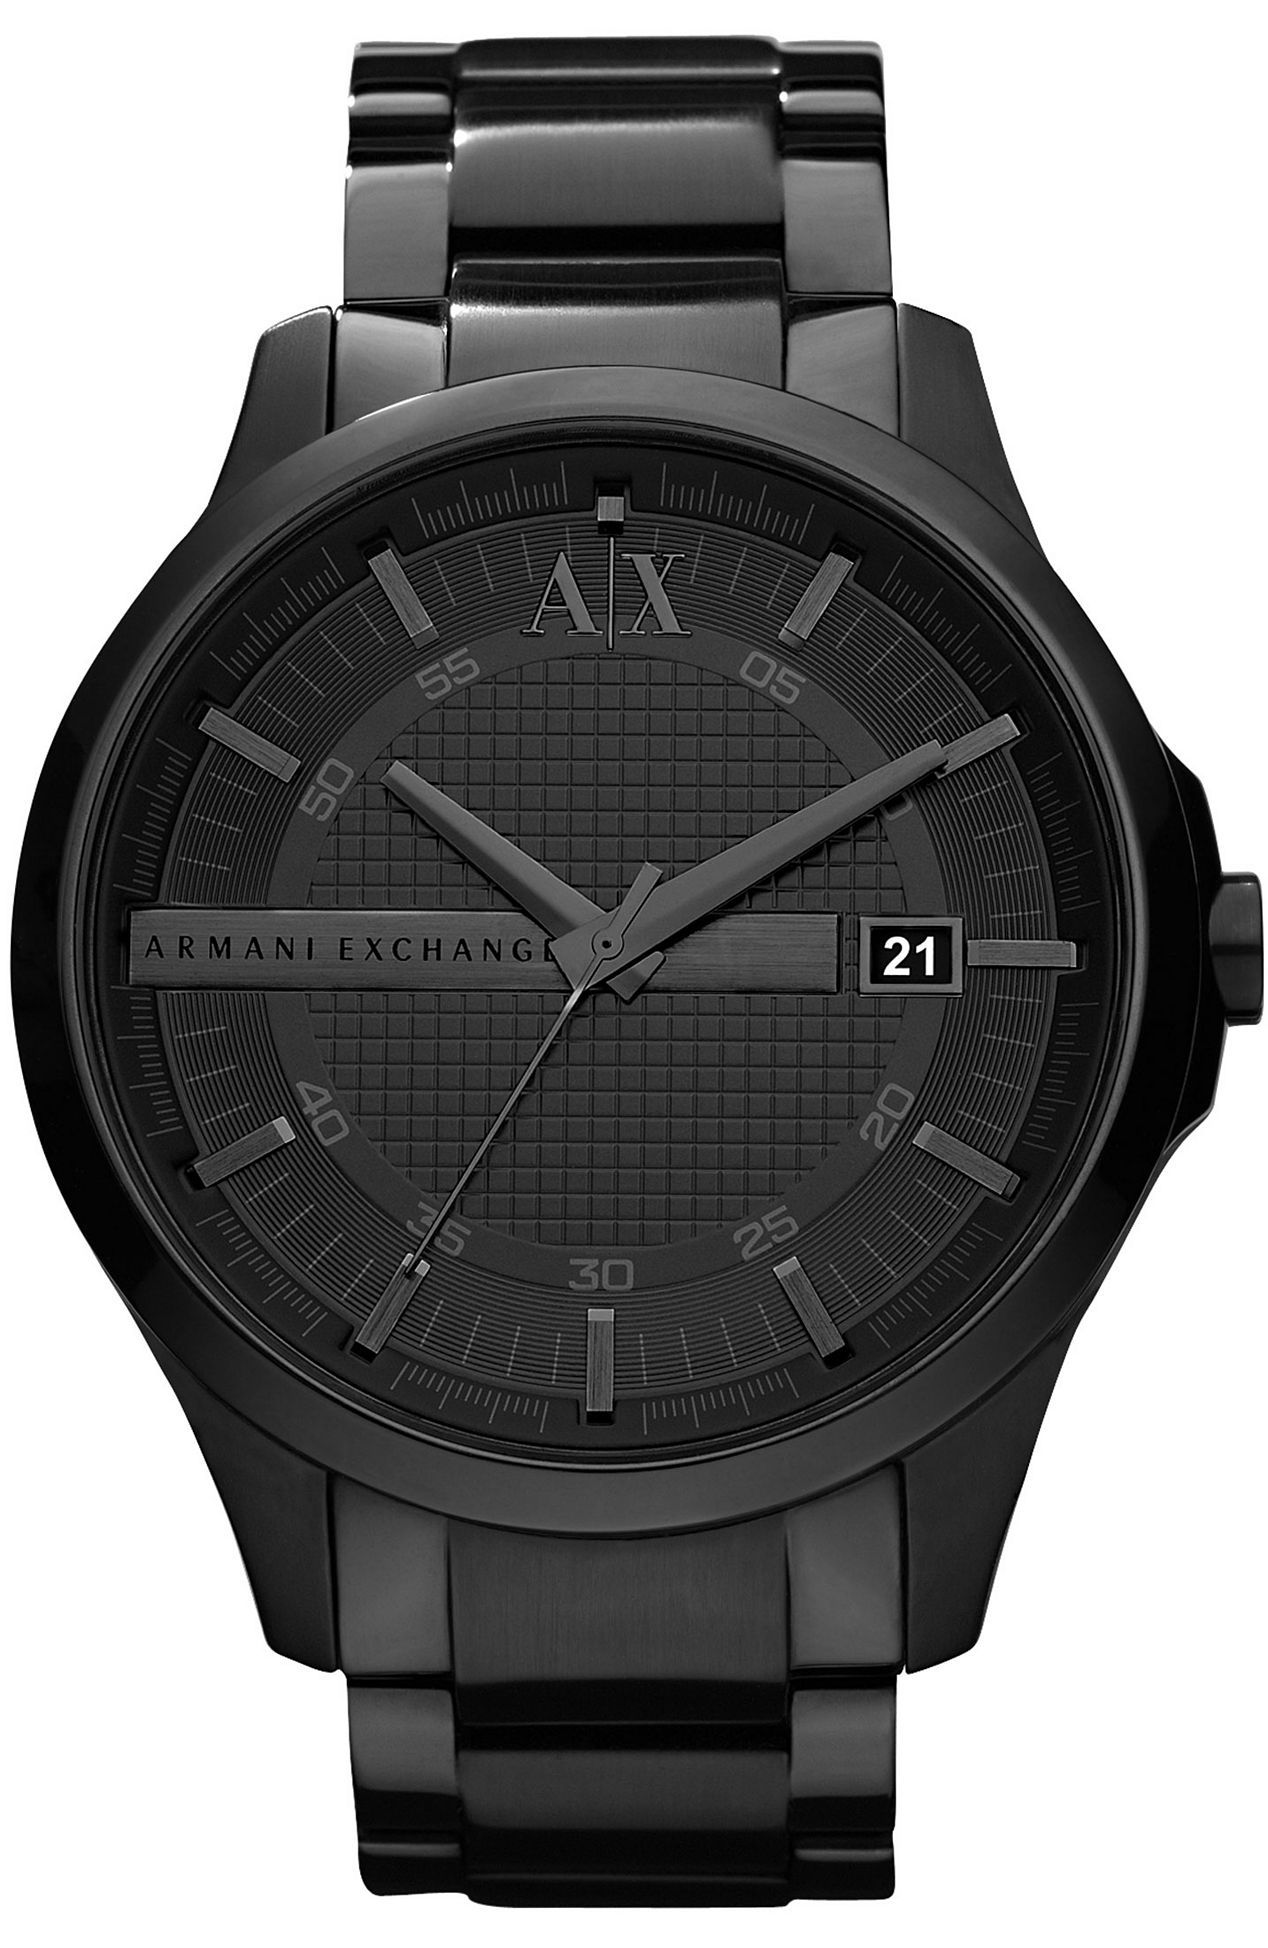 c70a0b2fcfb9 Armani Exchange - Black Steel Watch Relojes Armani